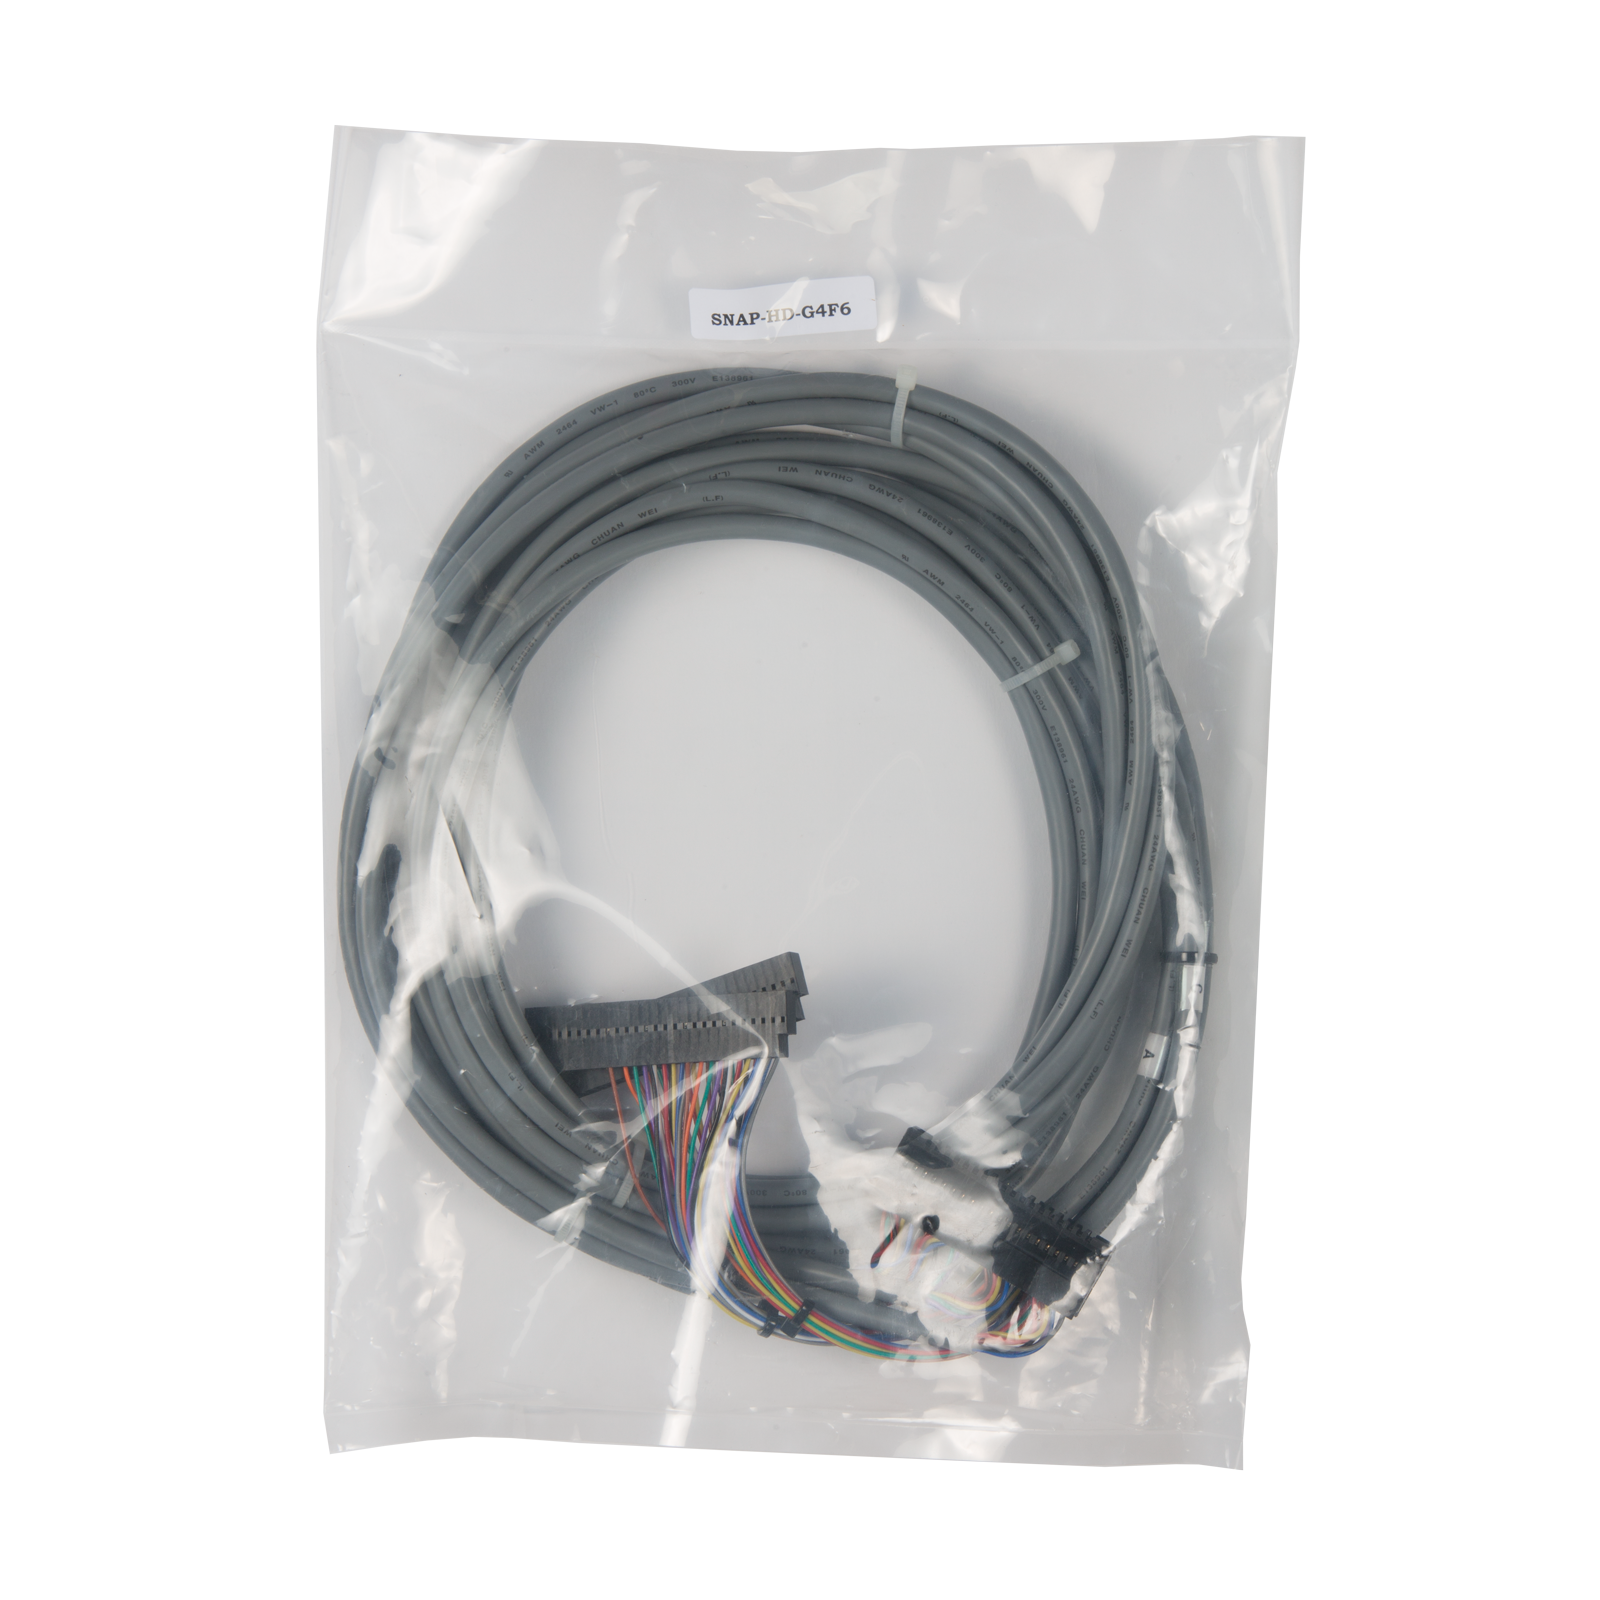 Opto22 - SNAP-HD-G4F6 - Header cable for SNAP 32-channel digital ...